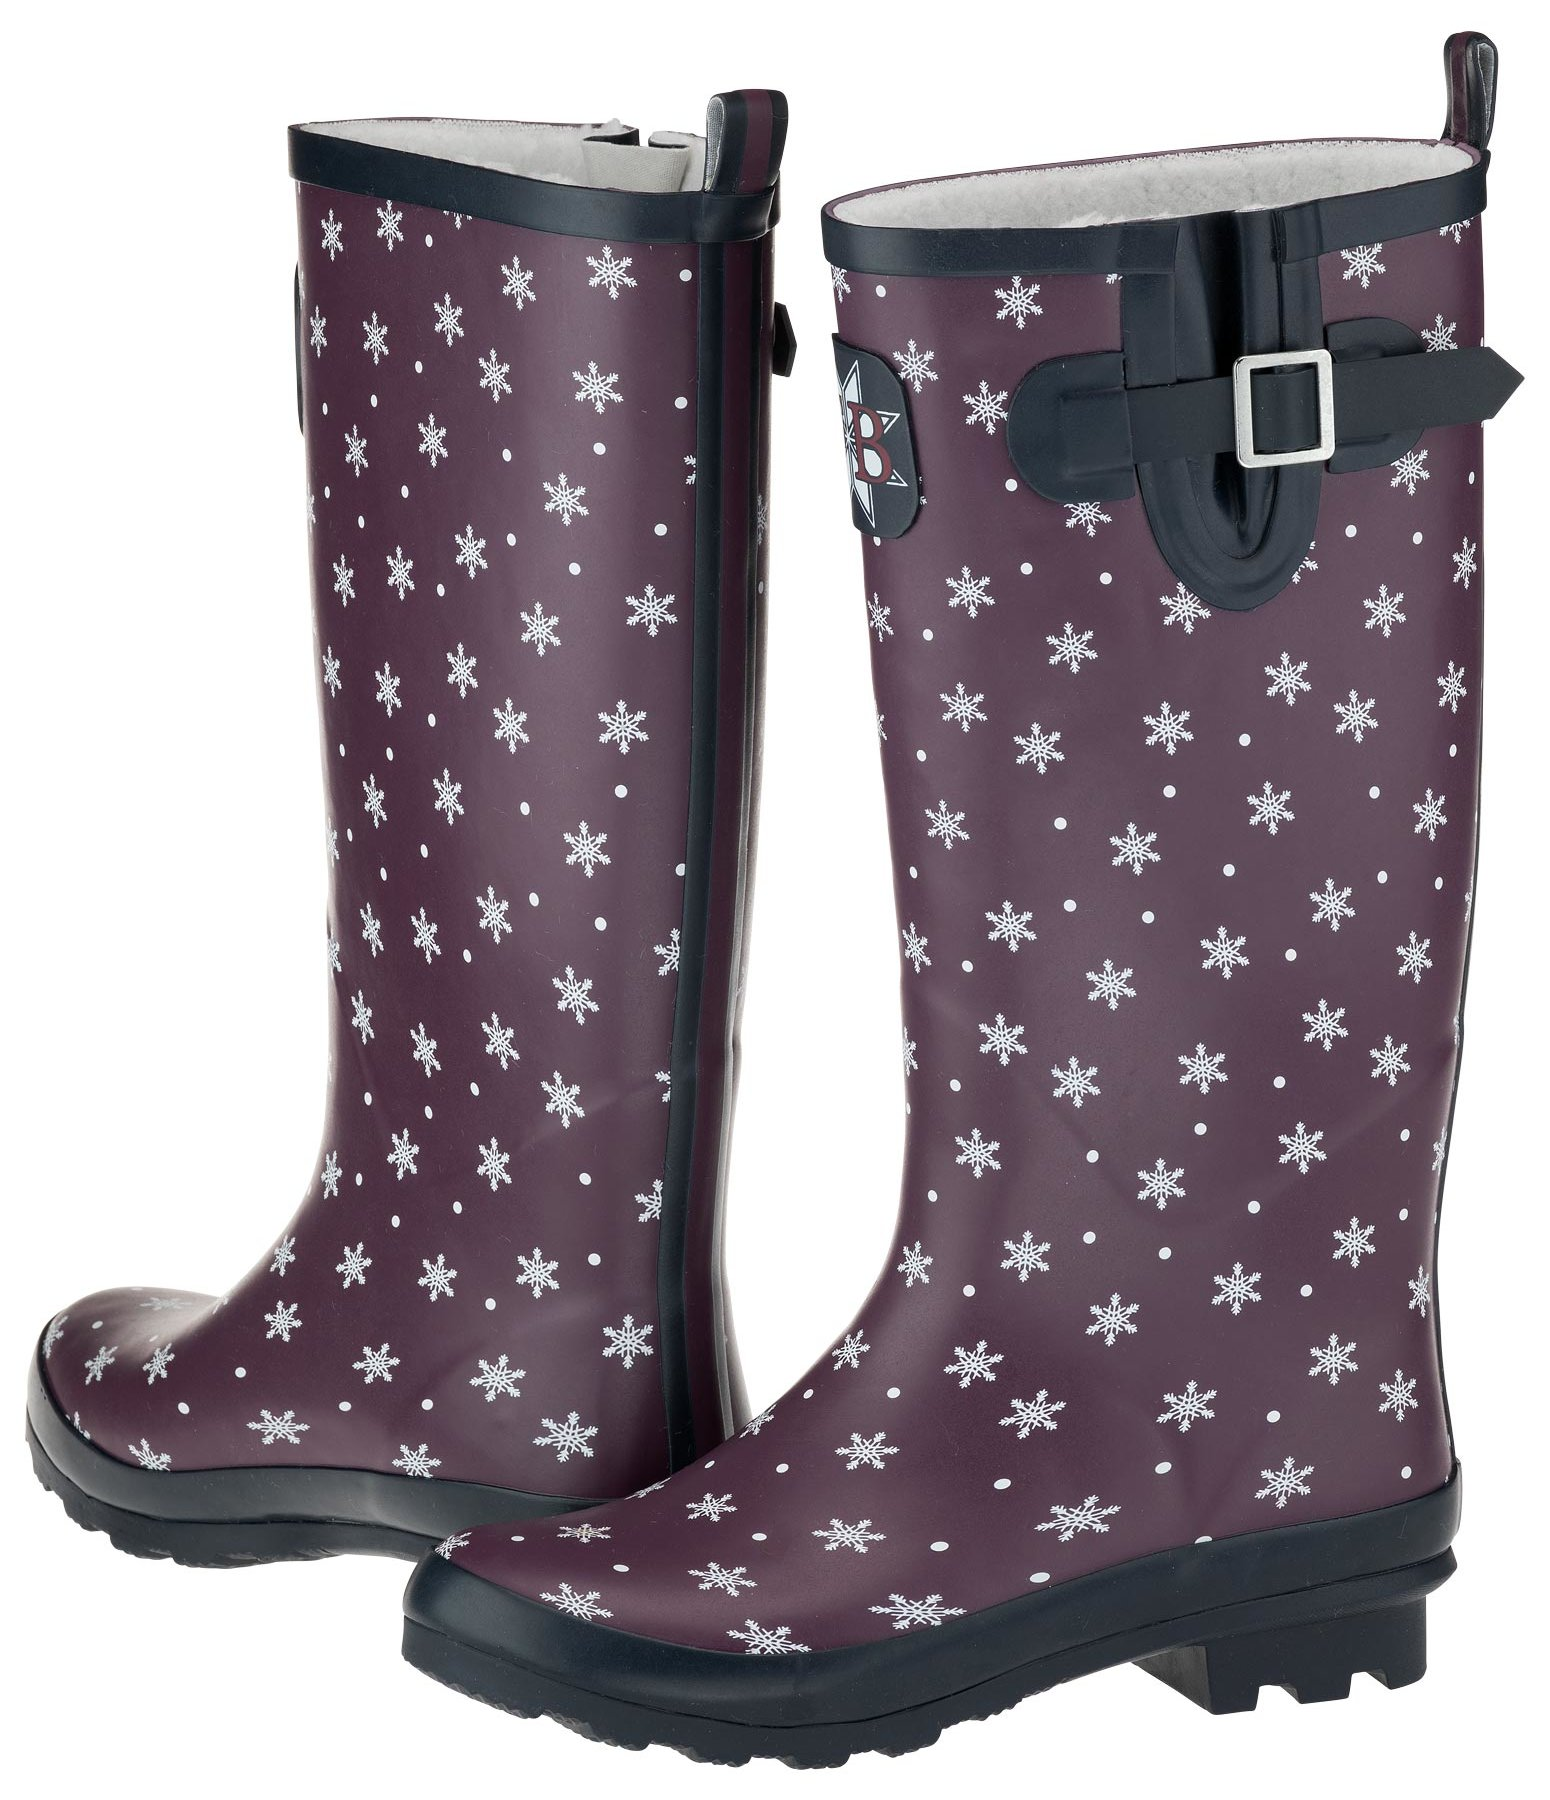 timeless design 2c920 2df81 Winter-Gummistiefel Tamaro